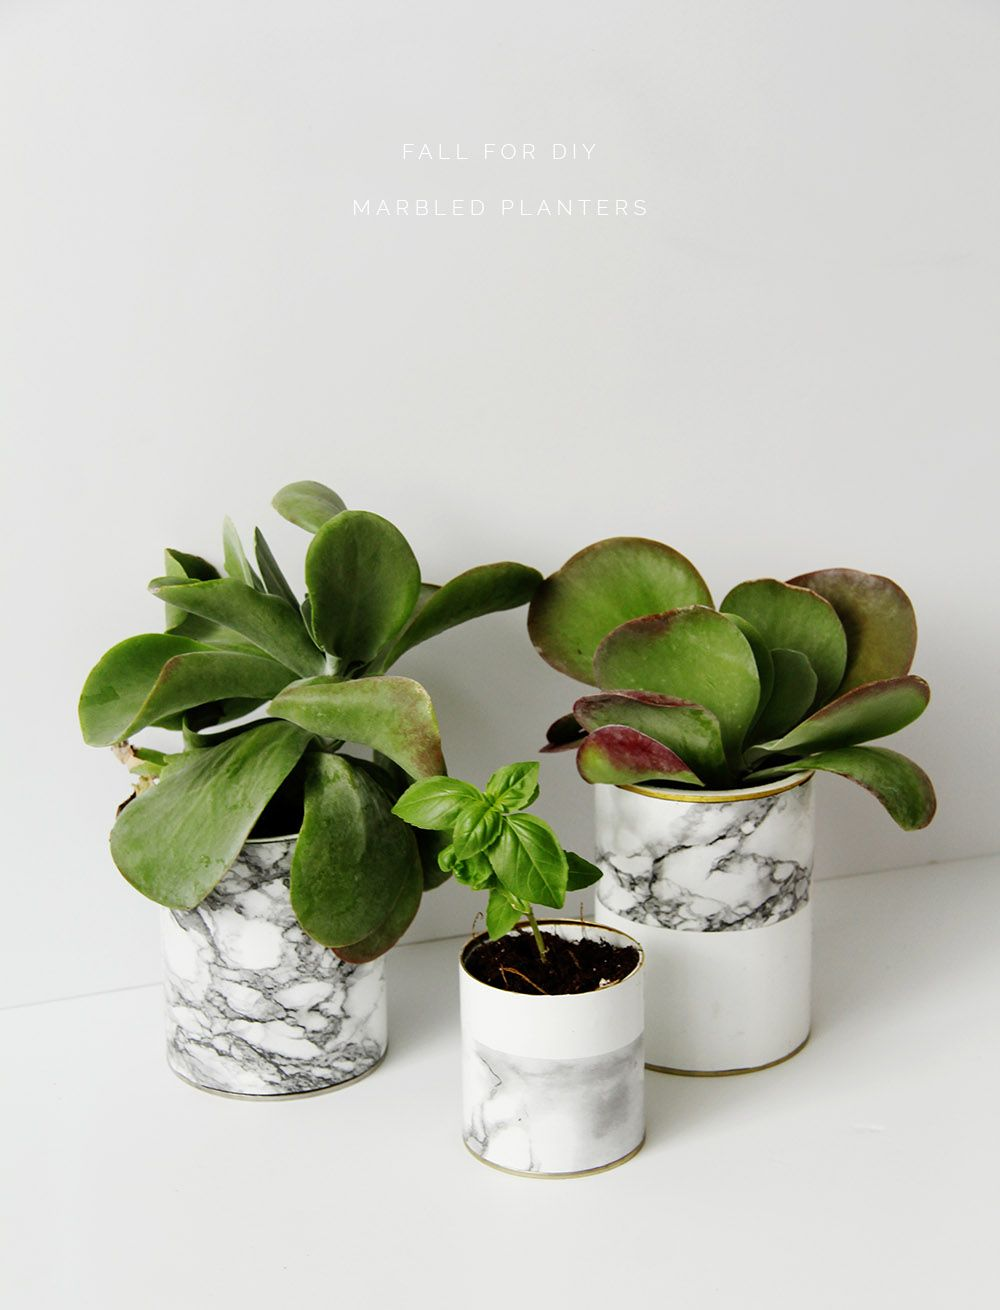 Diy Marble Planters Fall For Diy Diy Marble Diy Planters Marbled Planter